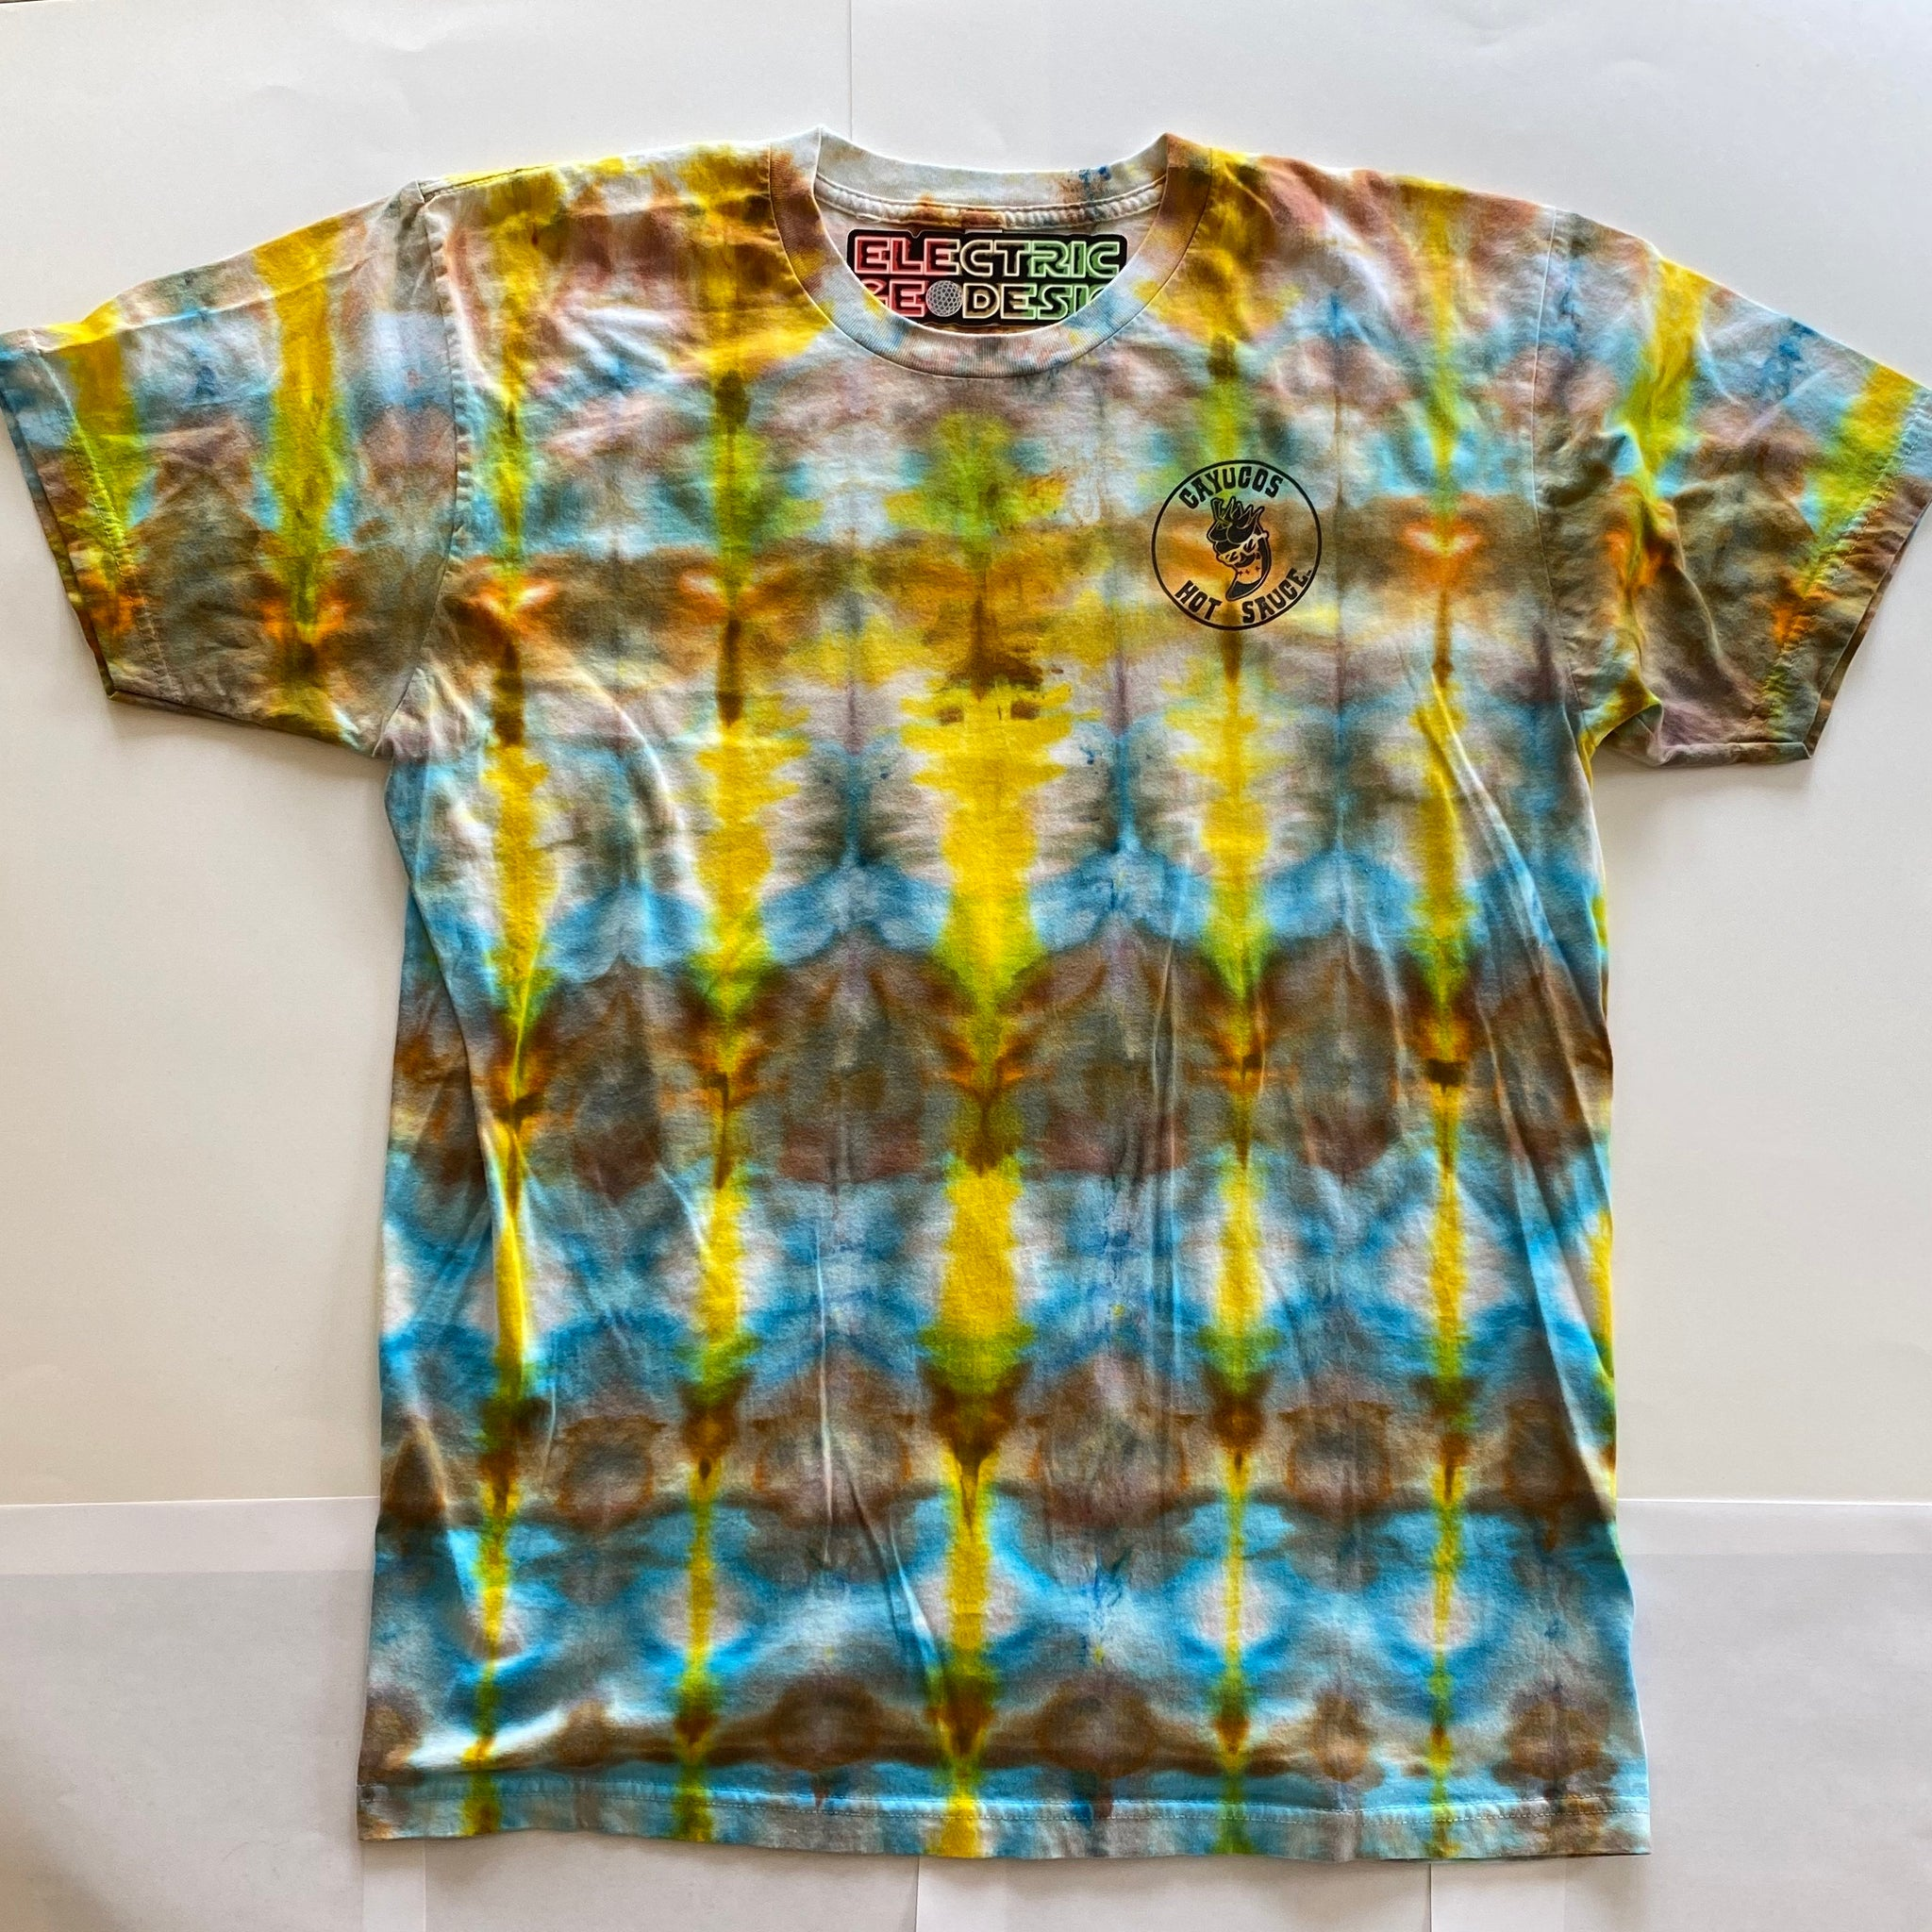 Electric Geodesic X Cayucos™ -MEN'S XL T-SHIRT- FREE SHIPPING